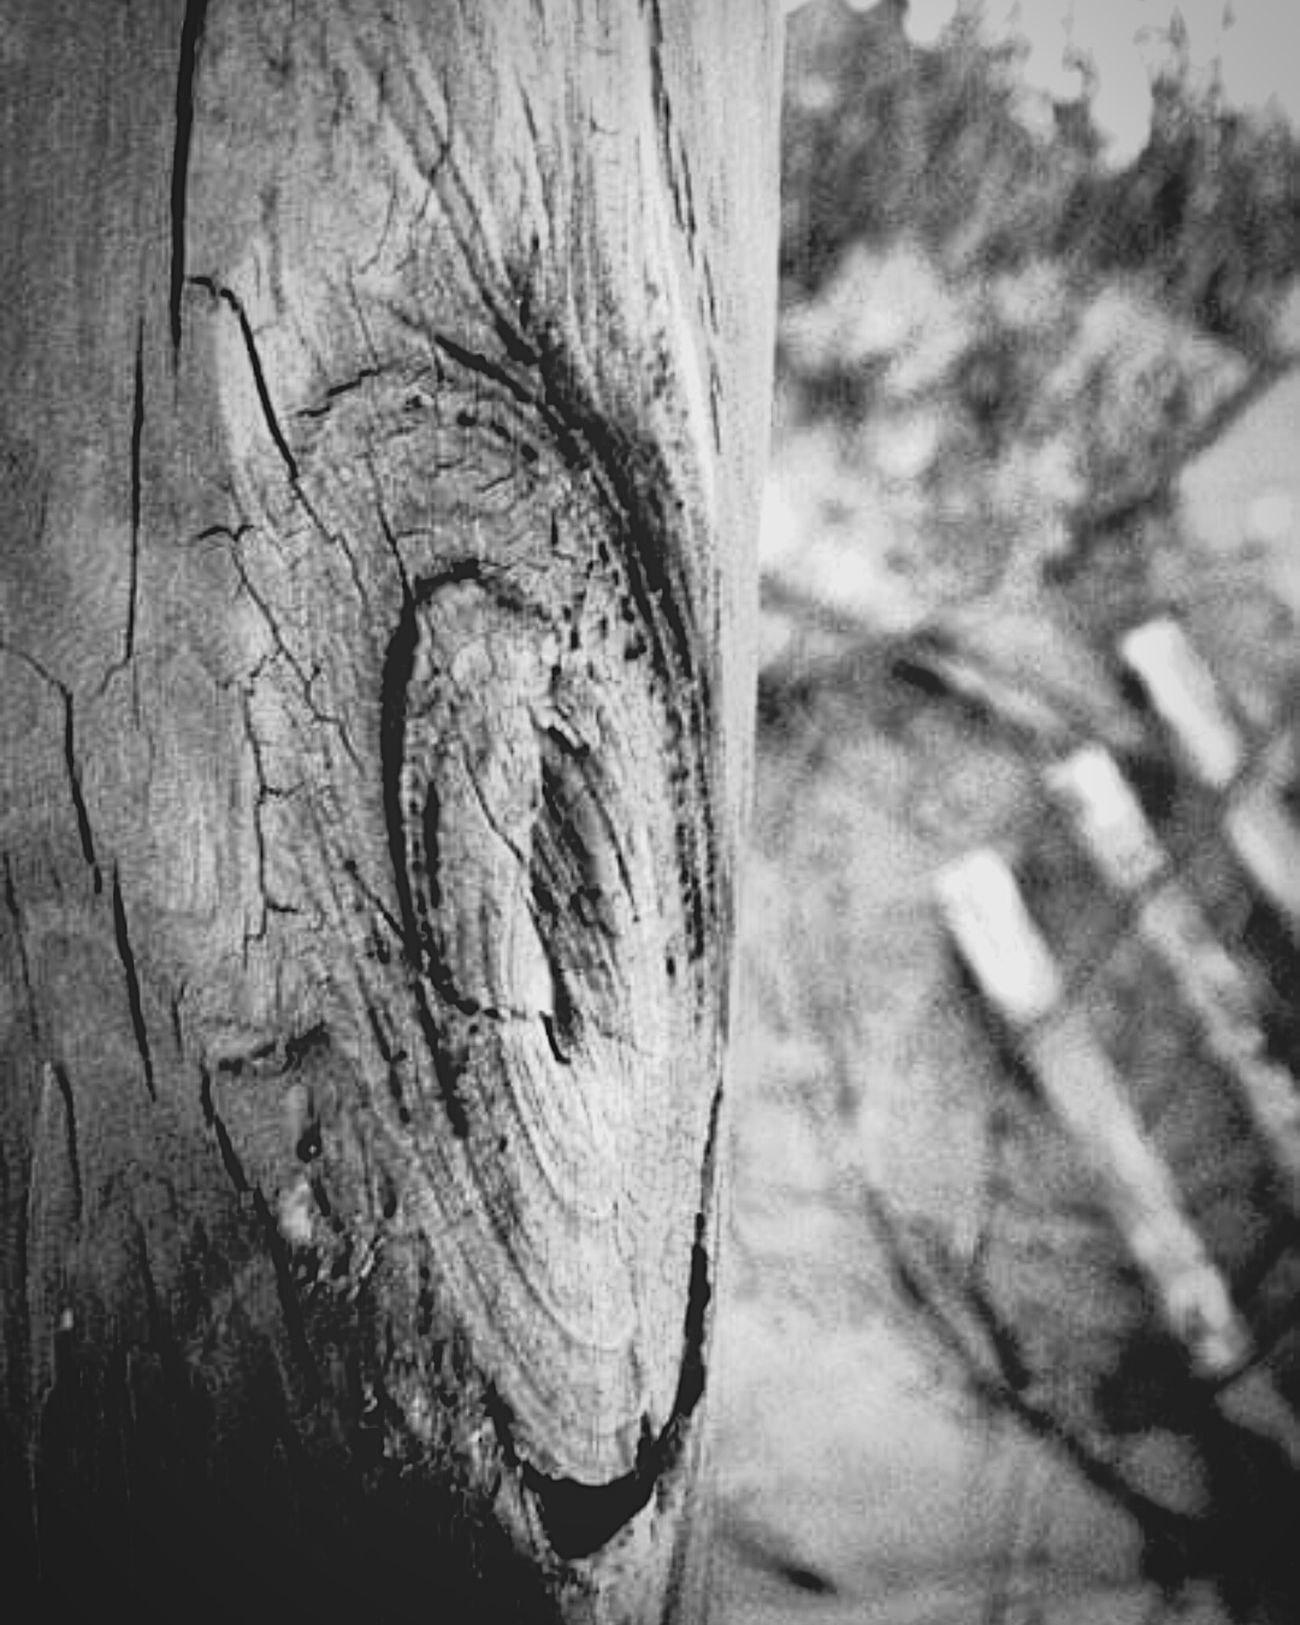 Beachphotography Beach Wood Textures And Surfaces Texture Imperfection Imperfection Is Beauty Blackandwhite Shades Of Grey